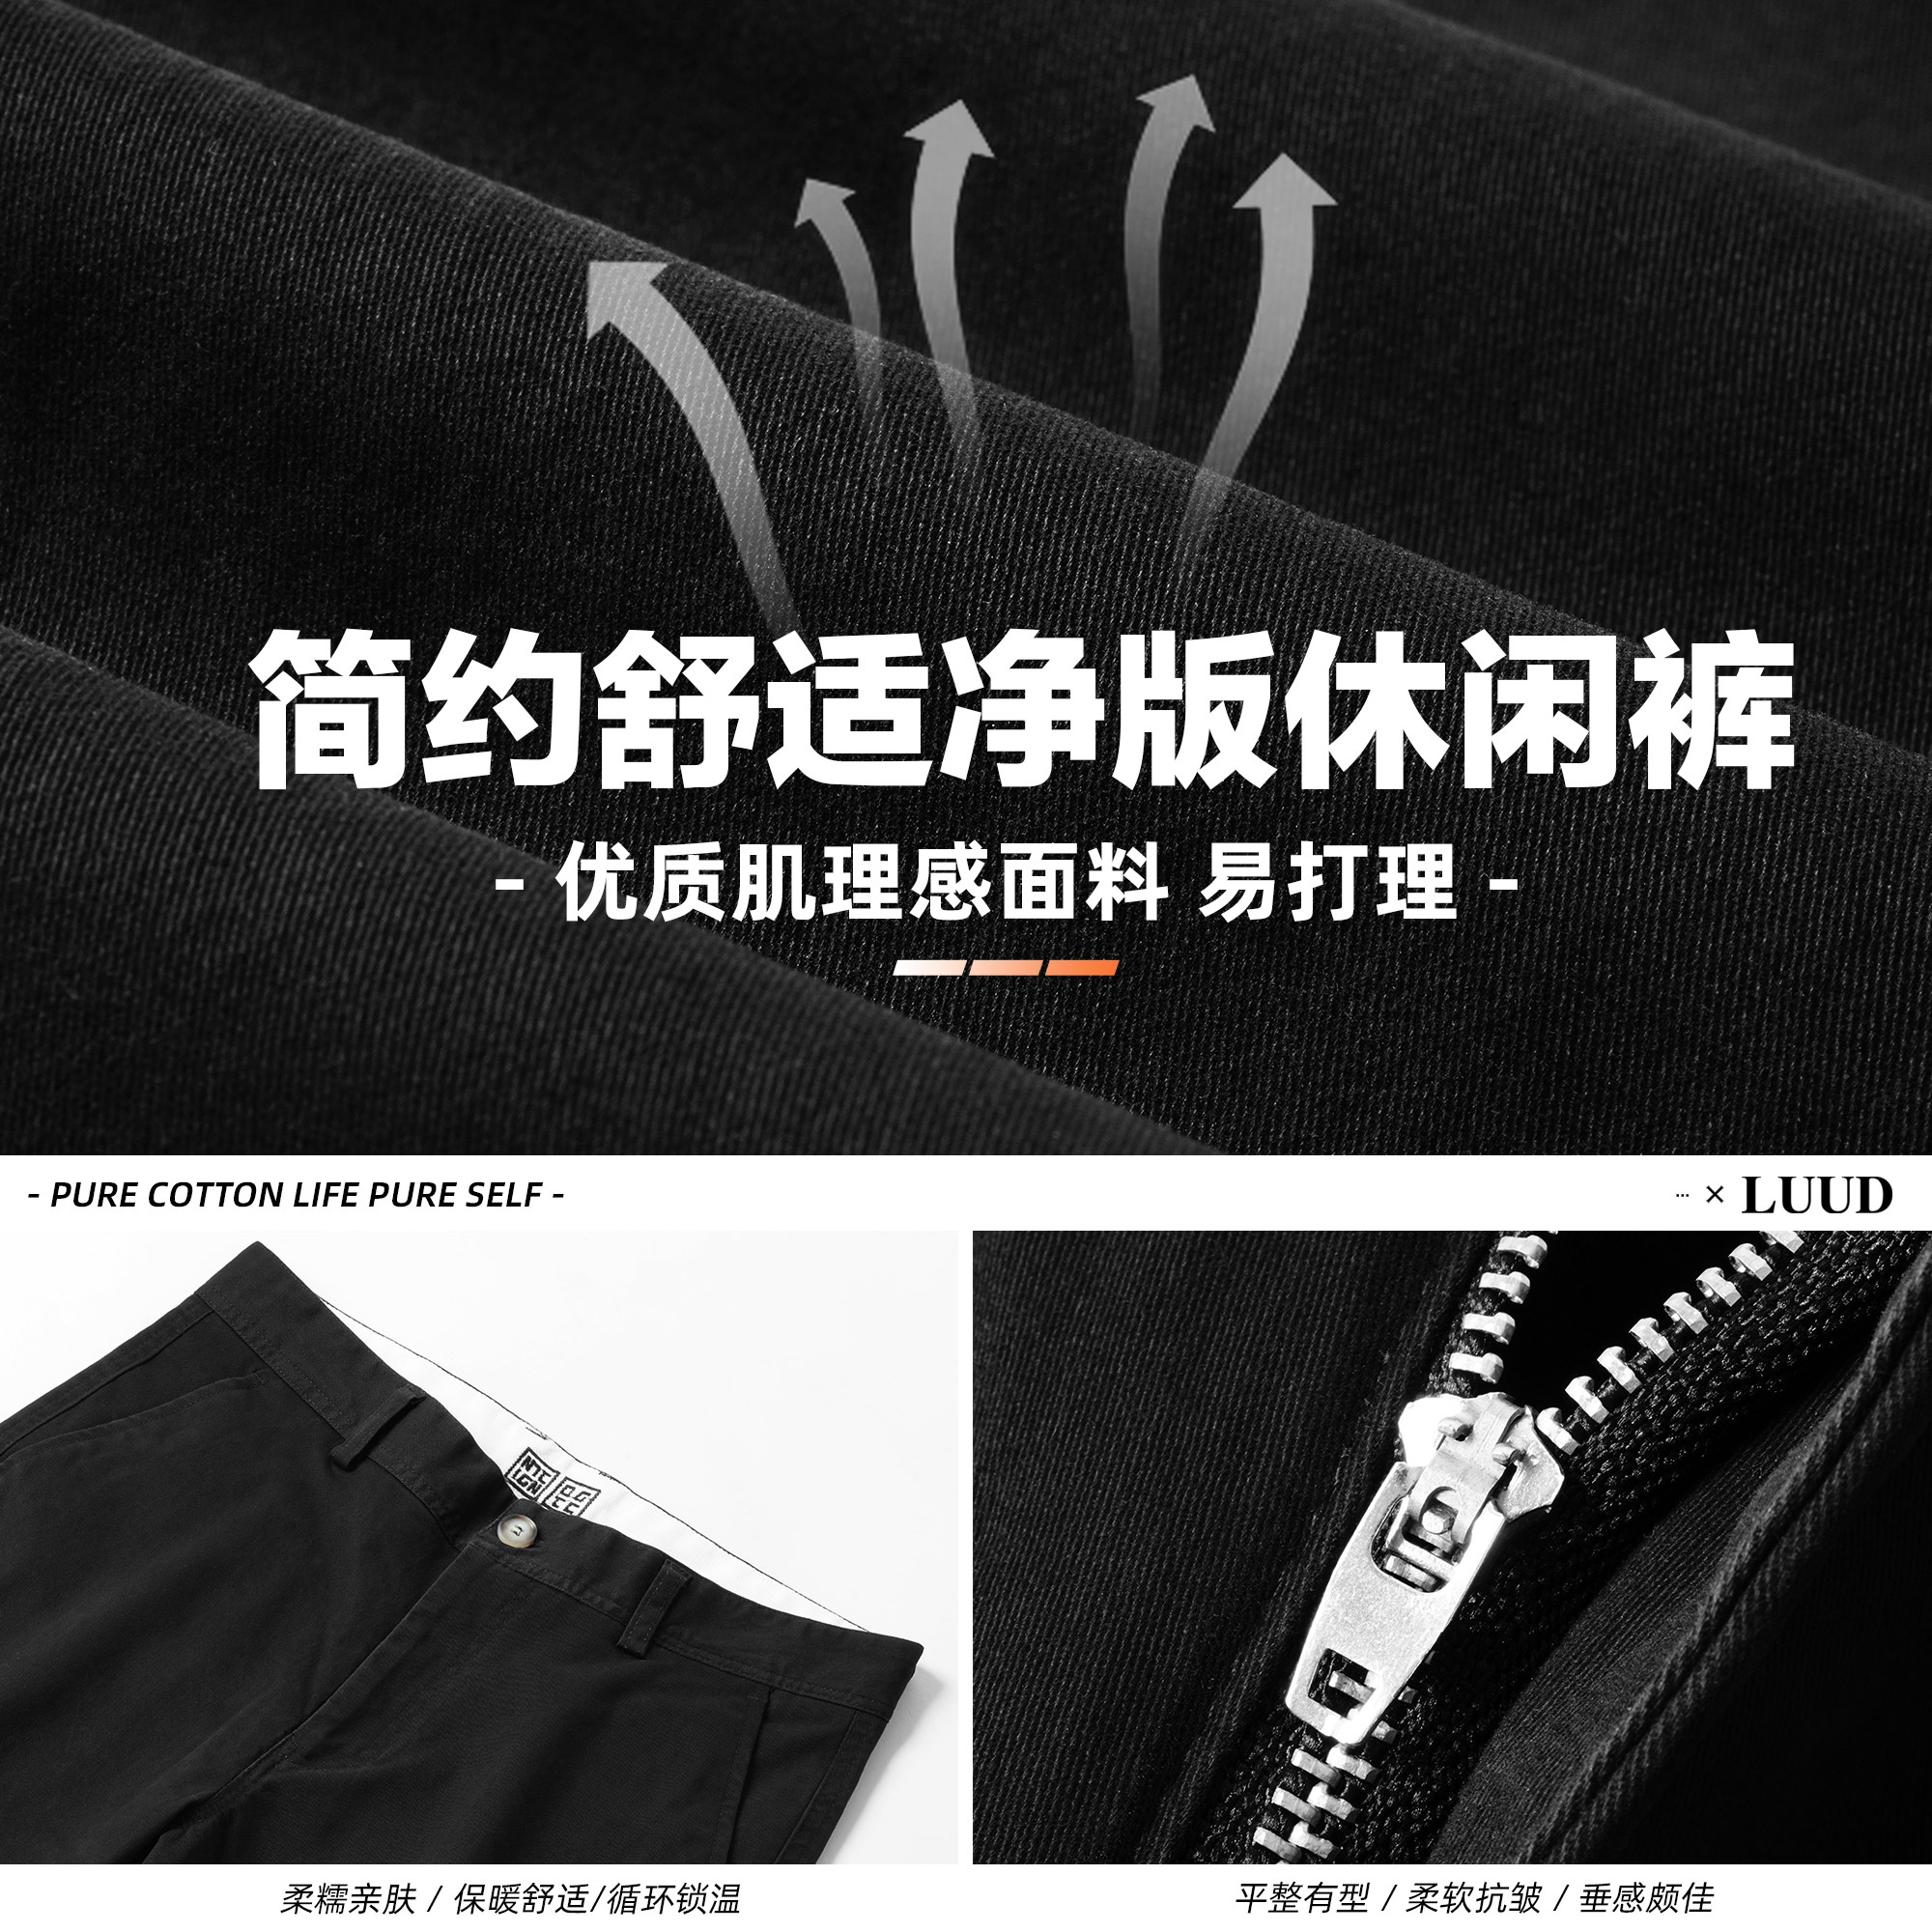 Tapered with breathable straight retro simple lyuud pants casual pants 9% cotton 9 pants trendy spring mens 100